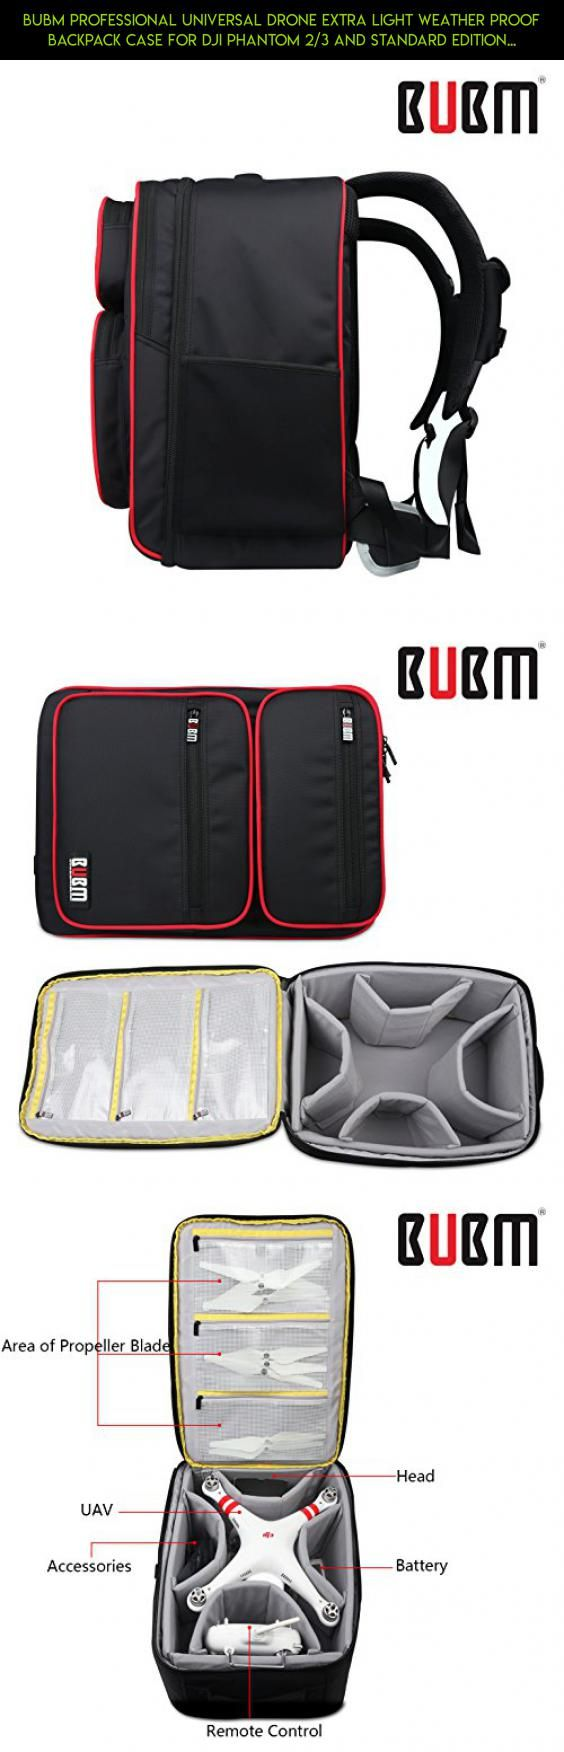 BUBM Professional Universal Drone Extra Light Weather Proof Backpack Case For DJI Phantom 2/3 and Standard Edition Drone's + Accessories and Tablets,Romote Control,Battery,Propeller blade #camera #3 #plans #phantom #drone #dji #shopping #tech #gadgets #products #racing #parts #technology #edition #kit #standard #fpv